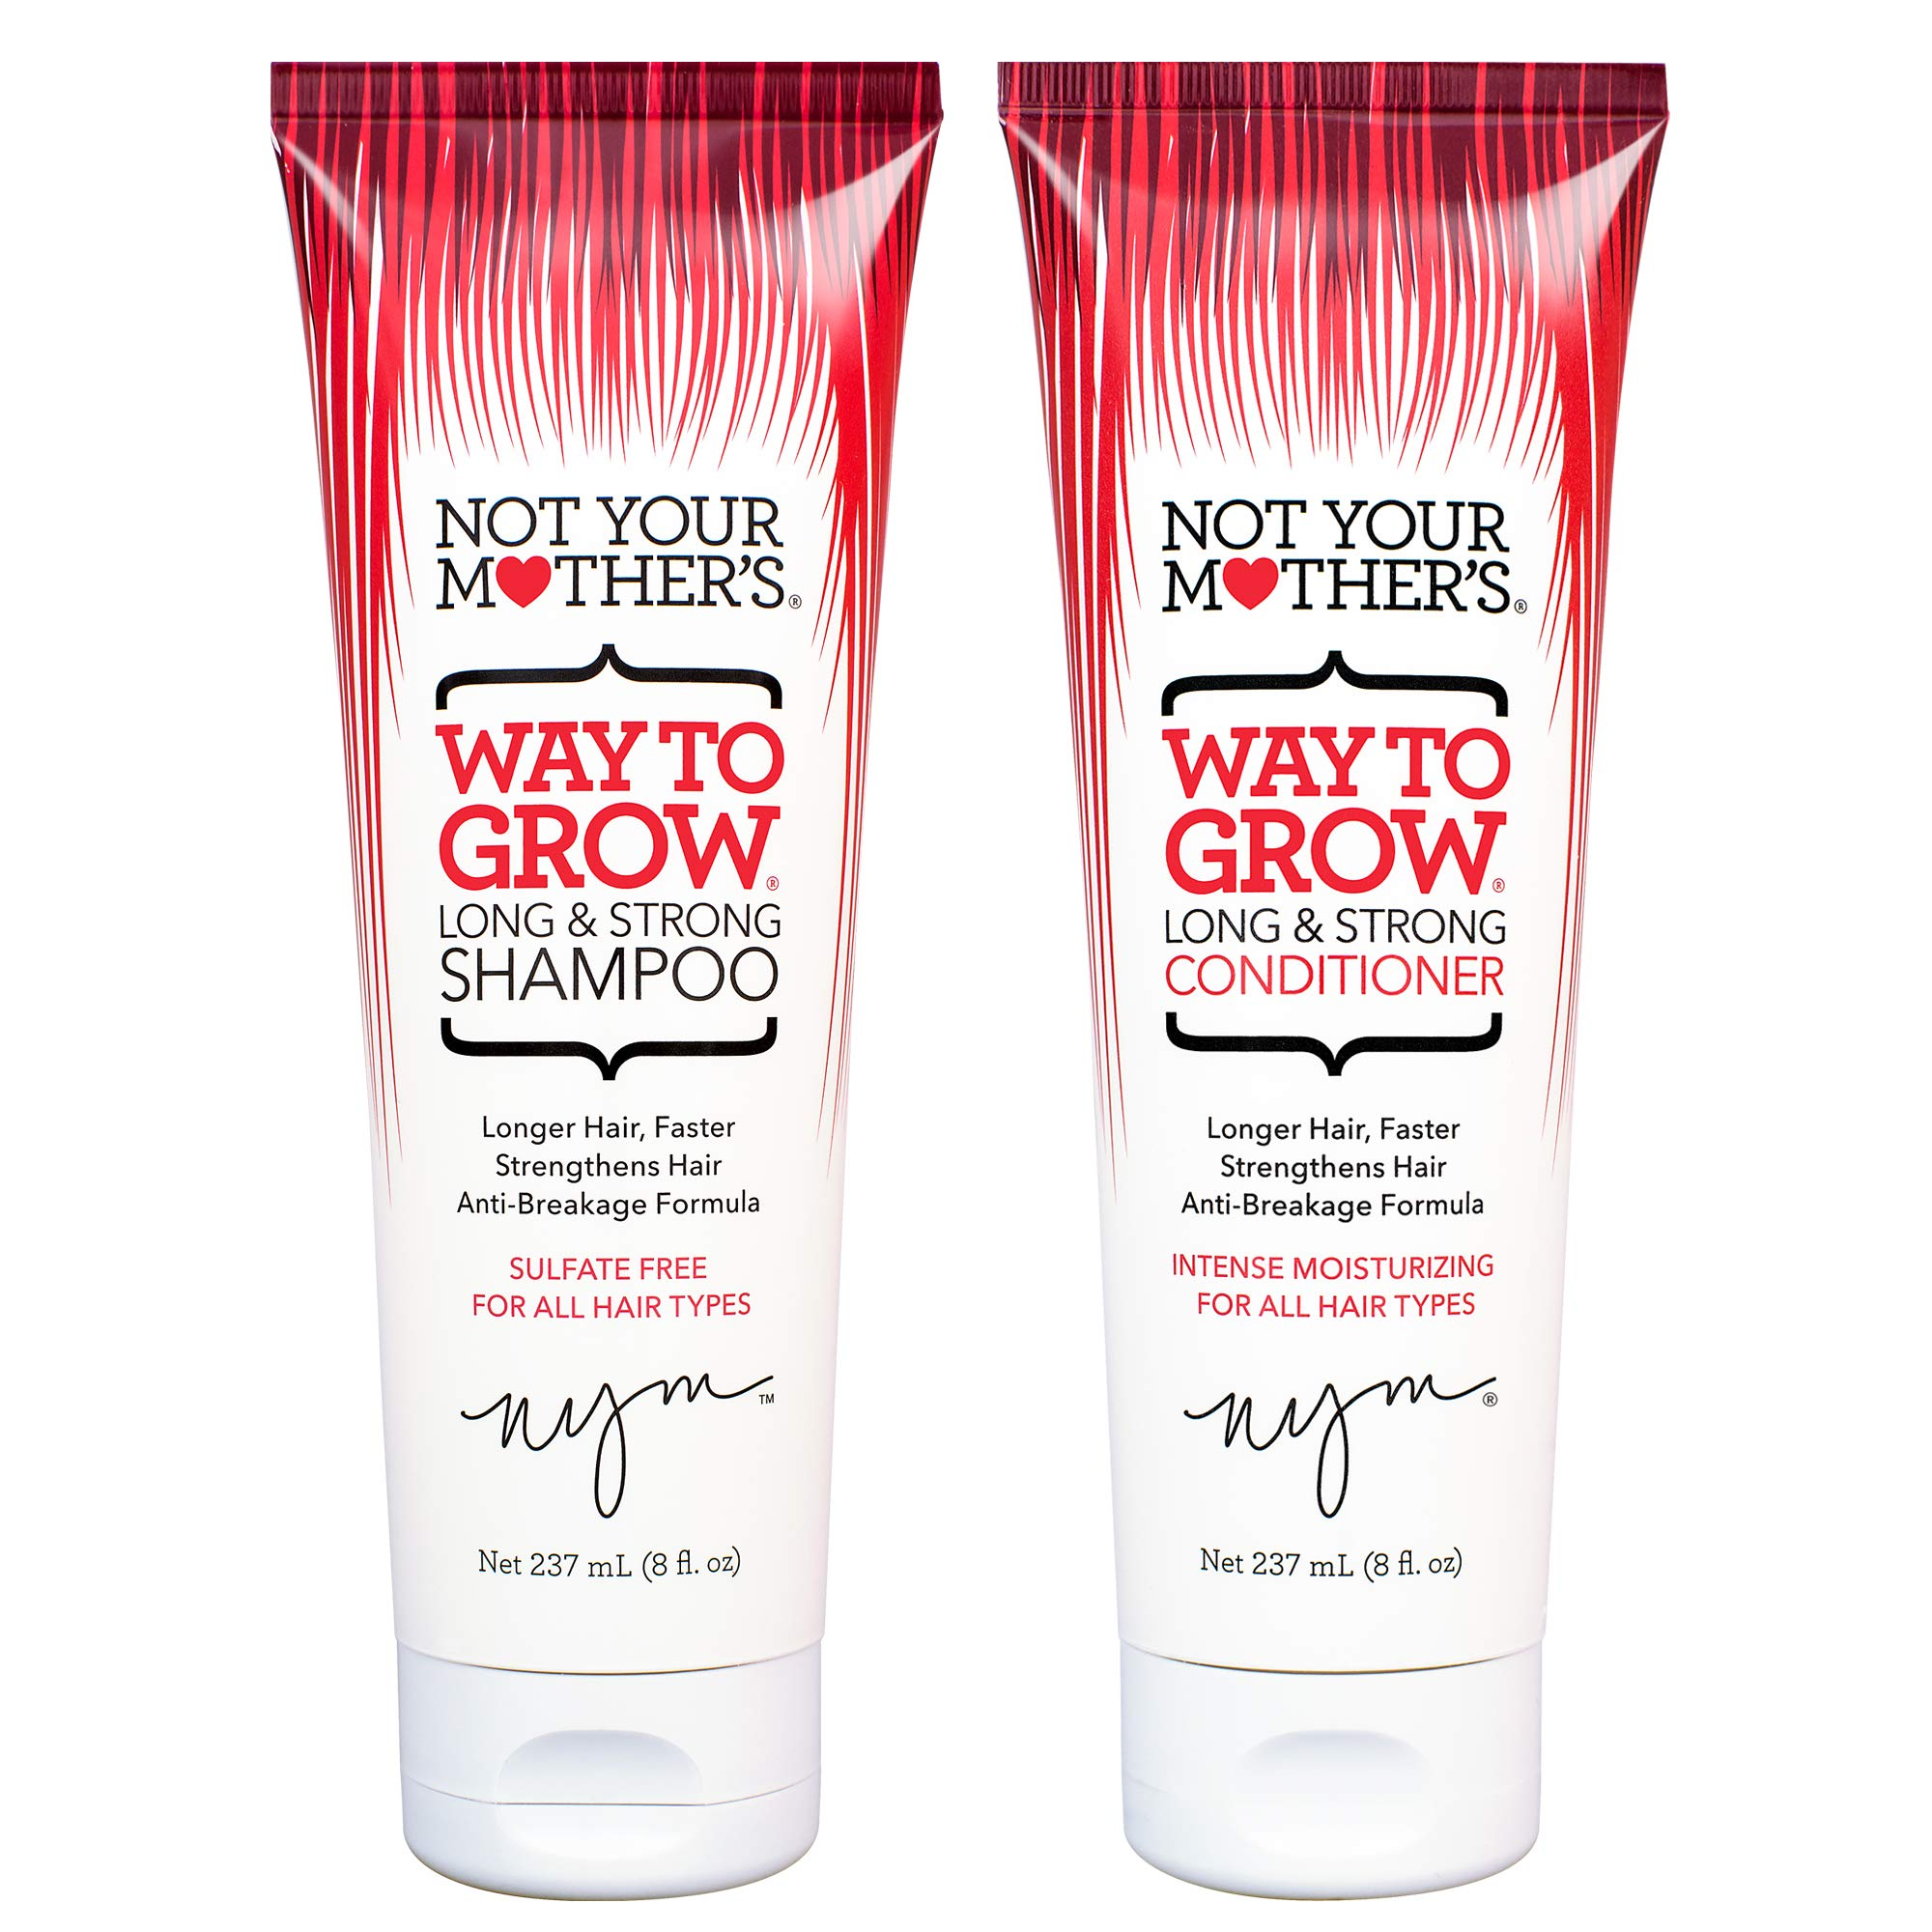 Not Your Mother's Way To Grow Shampoo & Conditioner Duo Pack 8 oz (1 of each) by Not Your Mother's